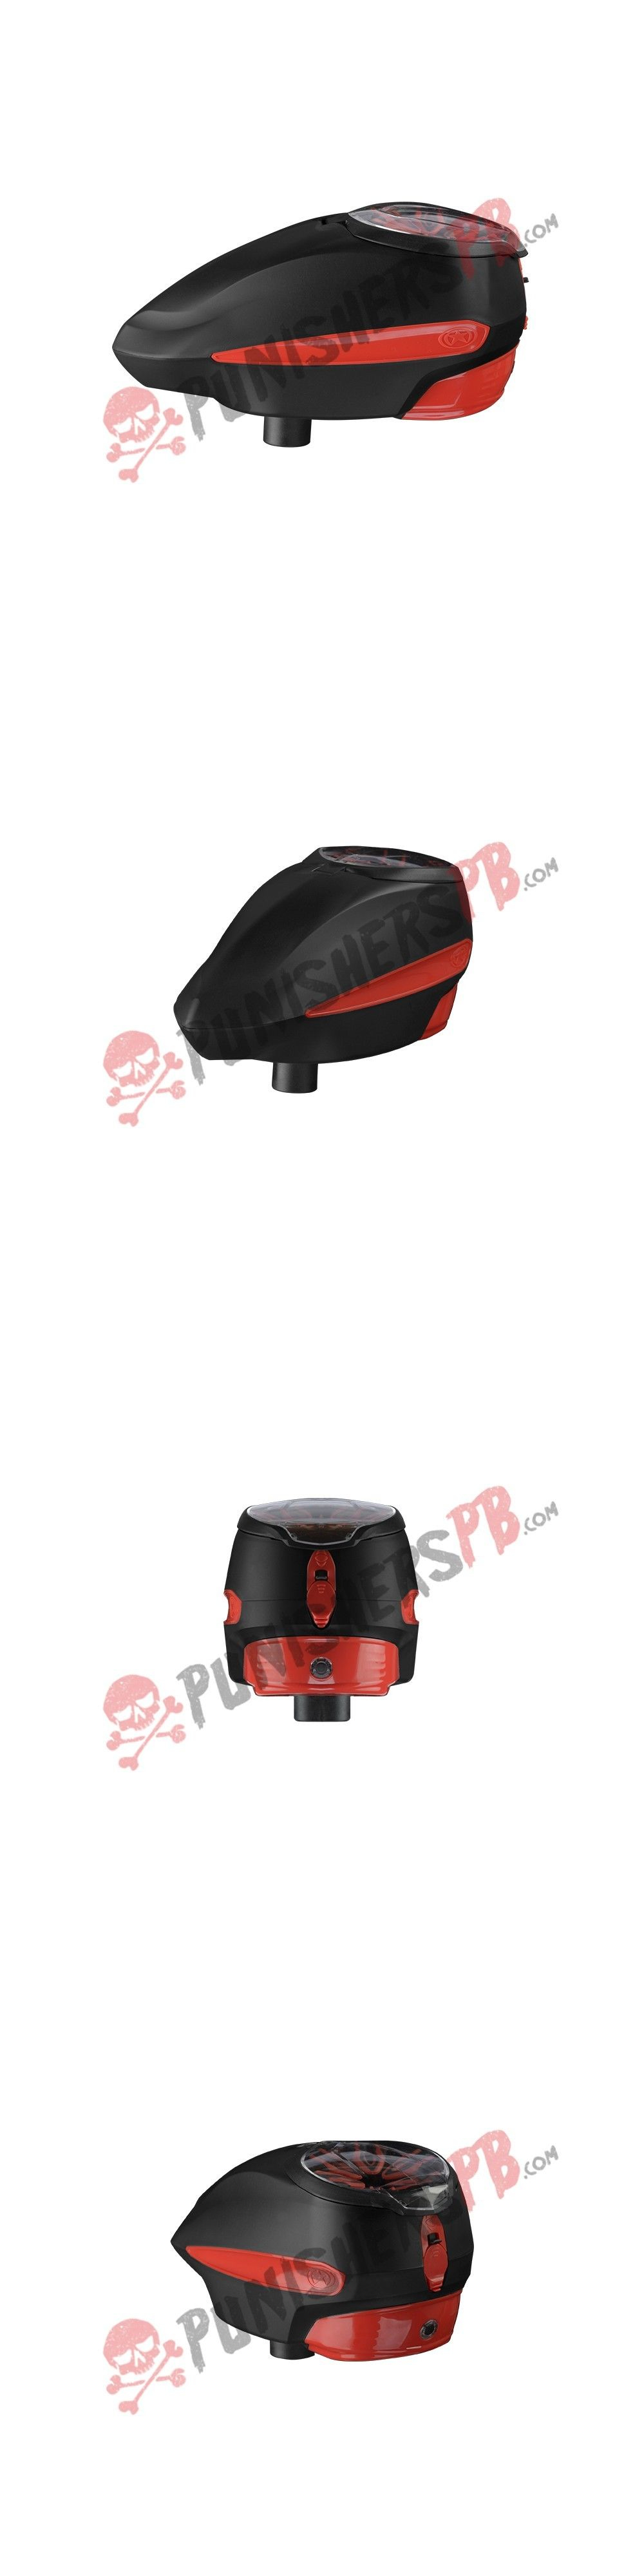 Hoppers and Loaders 165941: Gi Sportz Lvl Paintball Loader - Red BUY IT NOW ONLY: $154.95